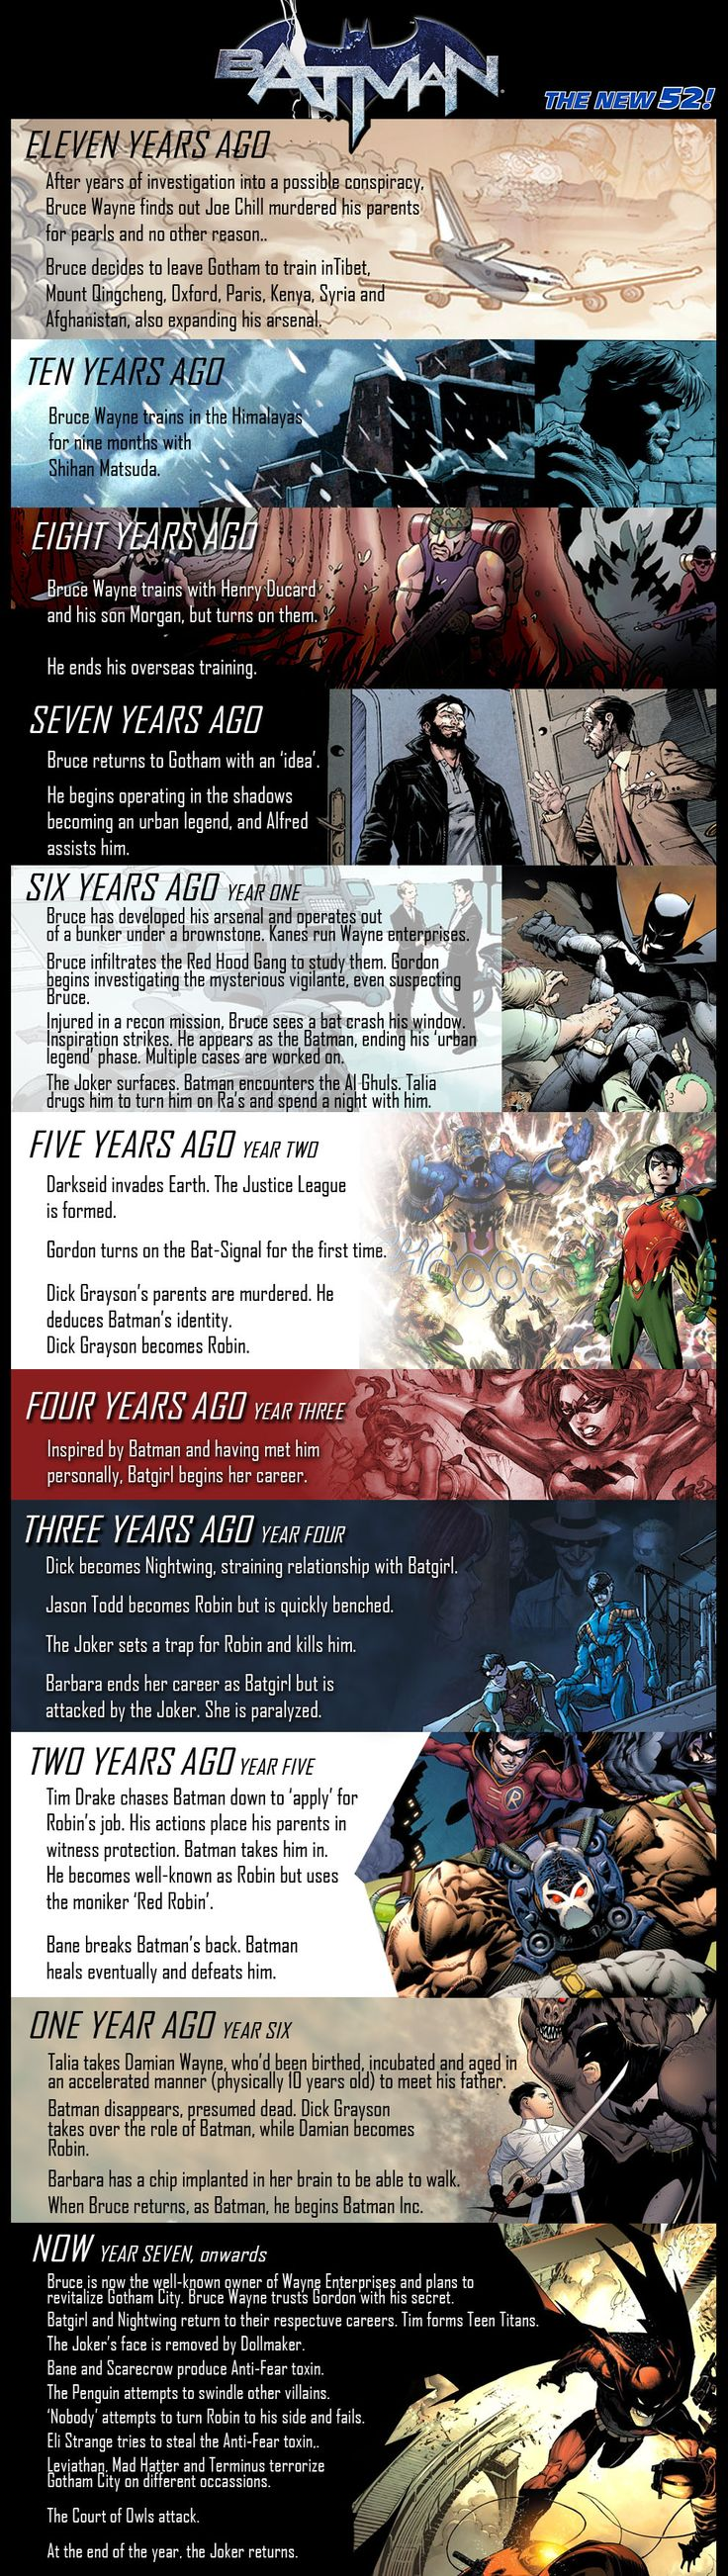 History of Batman